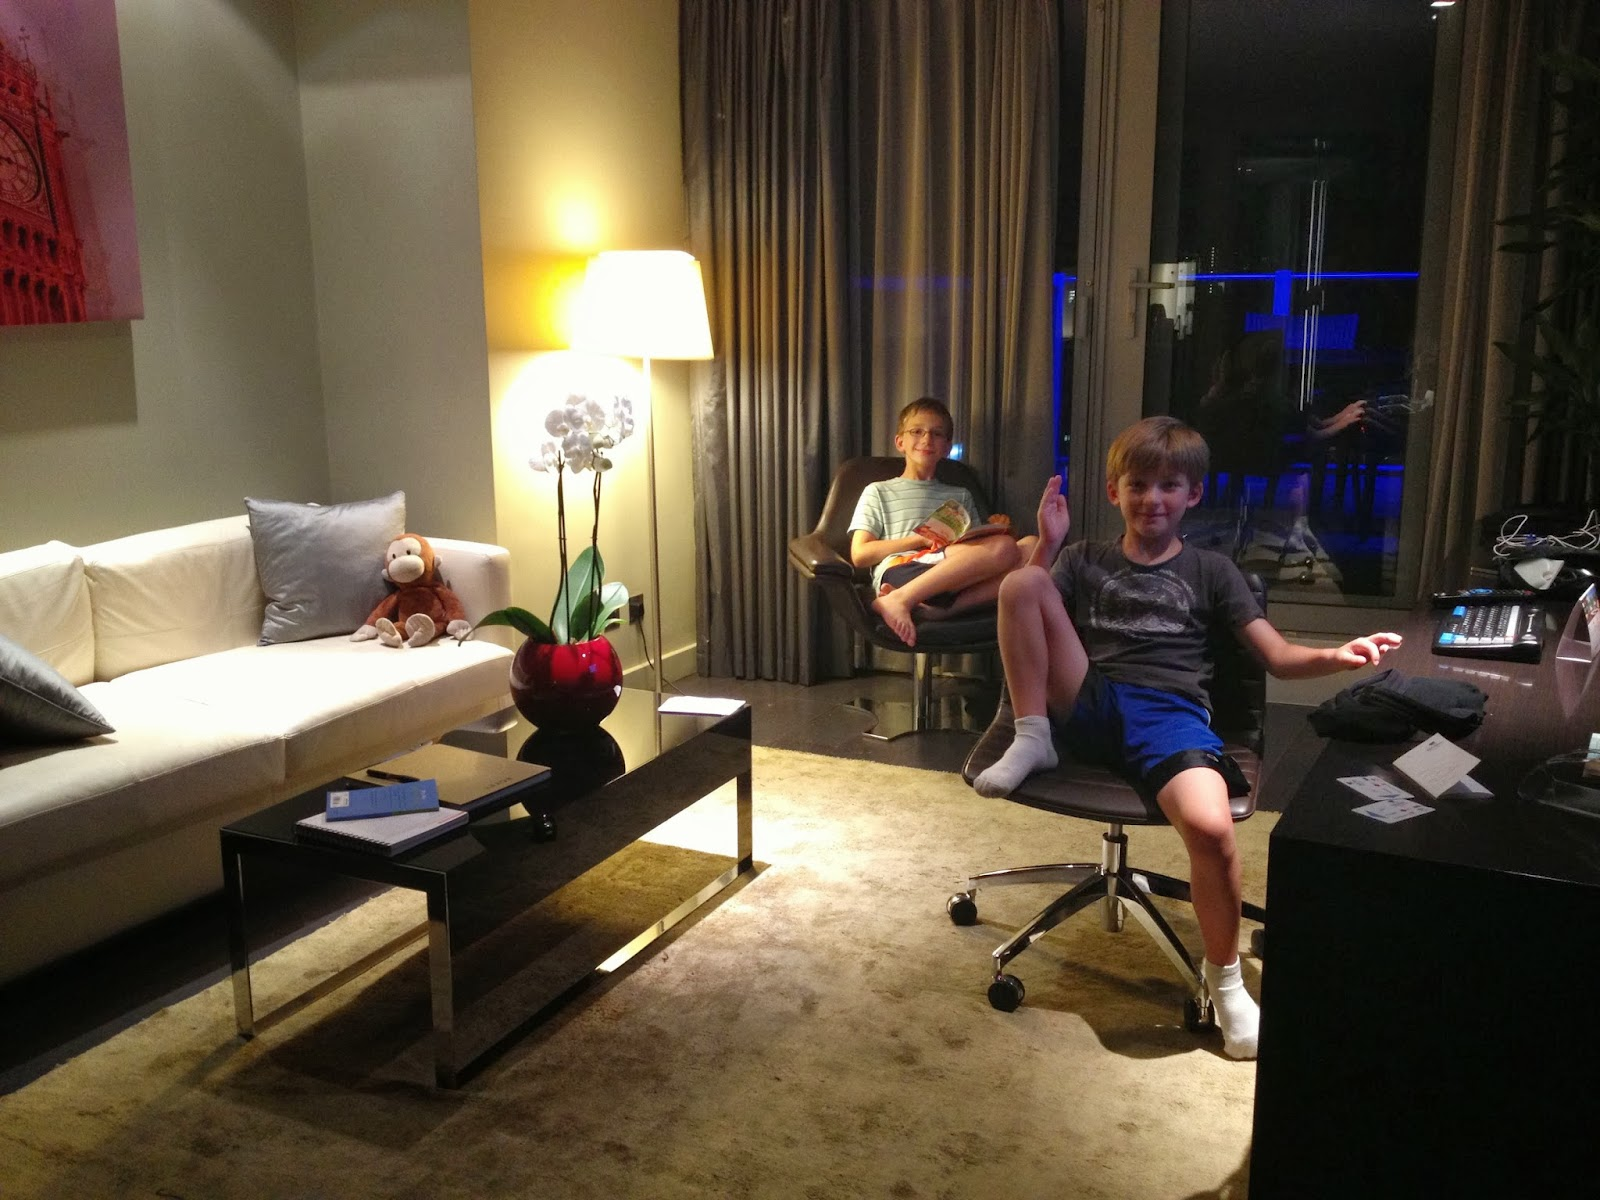 Cocktails gelato london hotel review park plaza - London hotel suites with 2 bedrooms ...